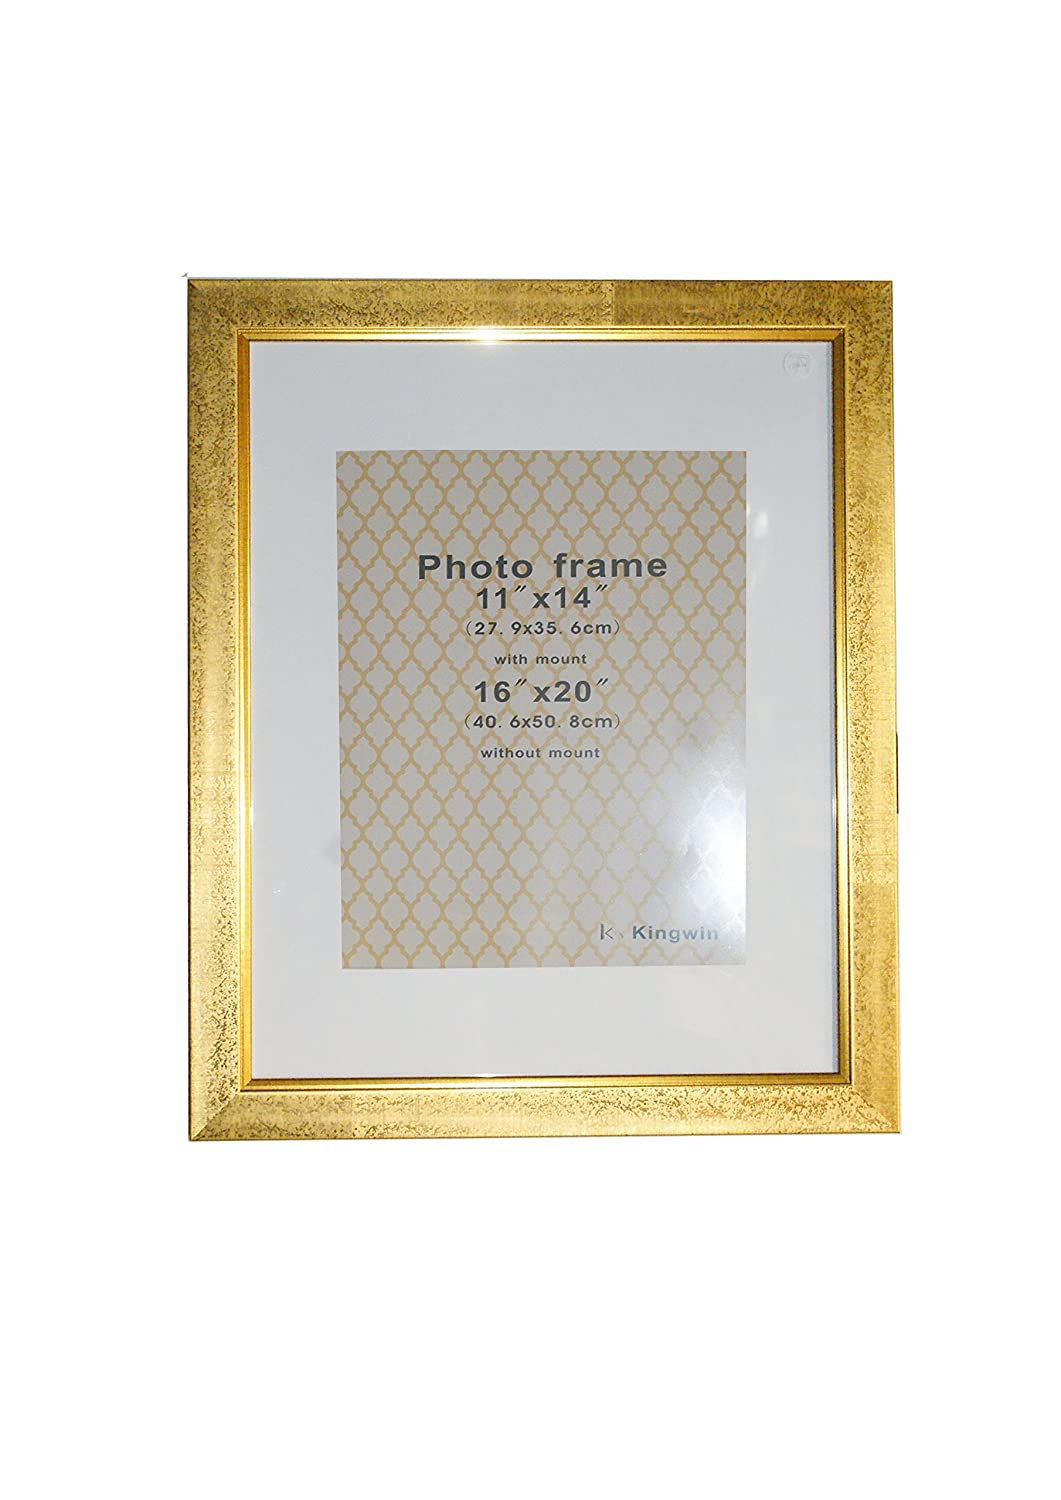 Amazon kingwin picture frame pf41007 gold with white mat 16 amazon kingwin picture frame pf41007 gold with white mat 16x20 gold jeuxipadfo Image collections